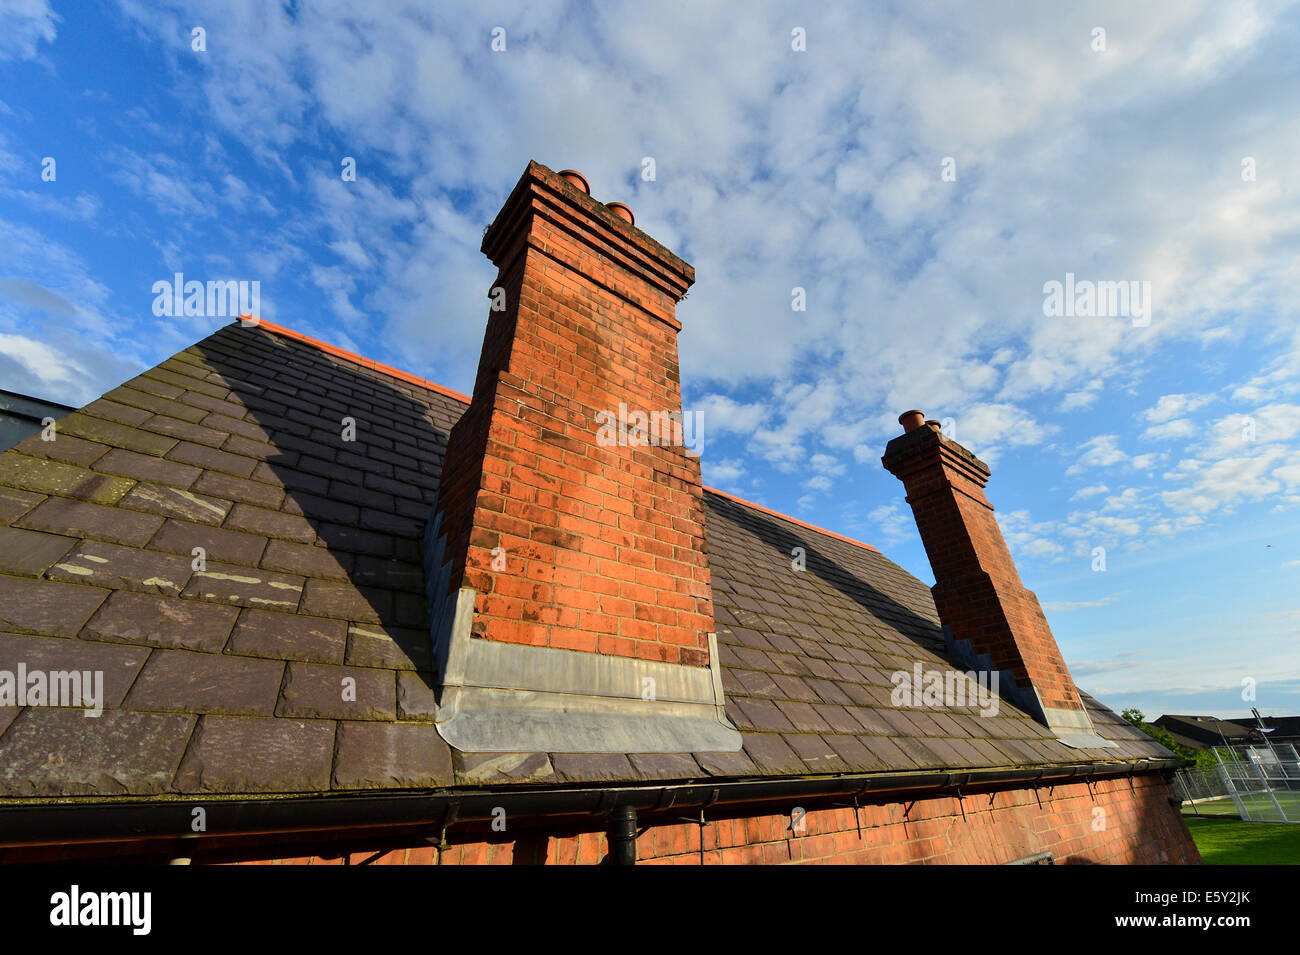 Tall Red Brick Solid Fuel House Chimney And Blue Sky, Derry, Londonderry,  Northern